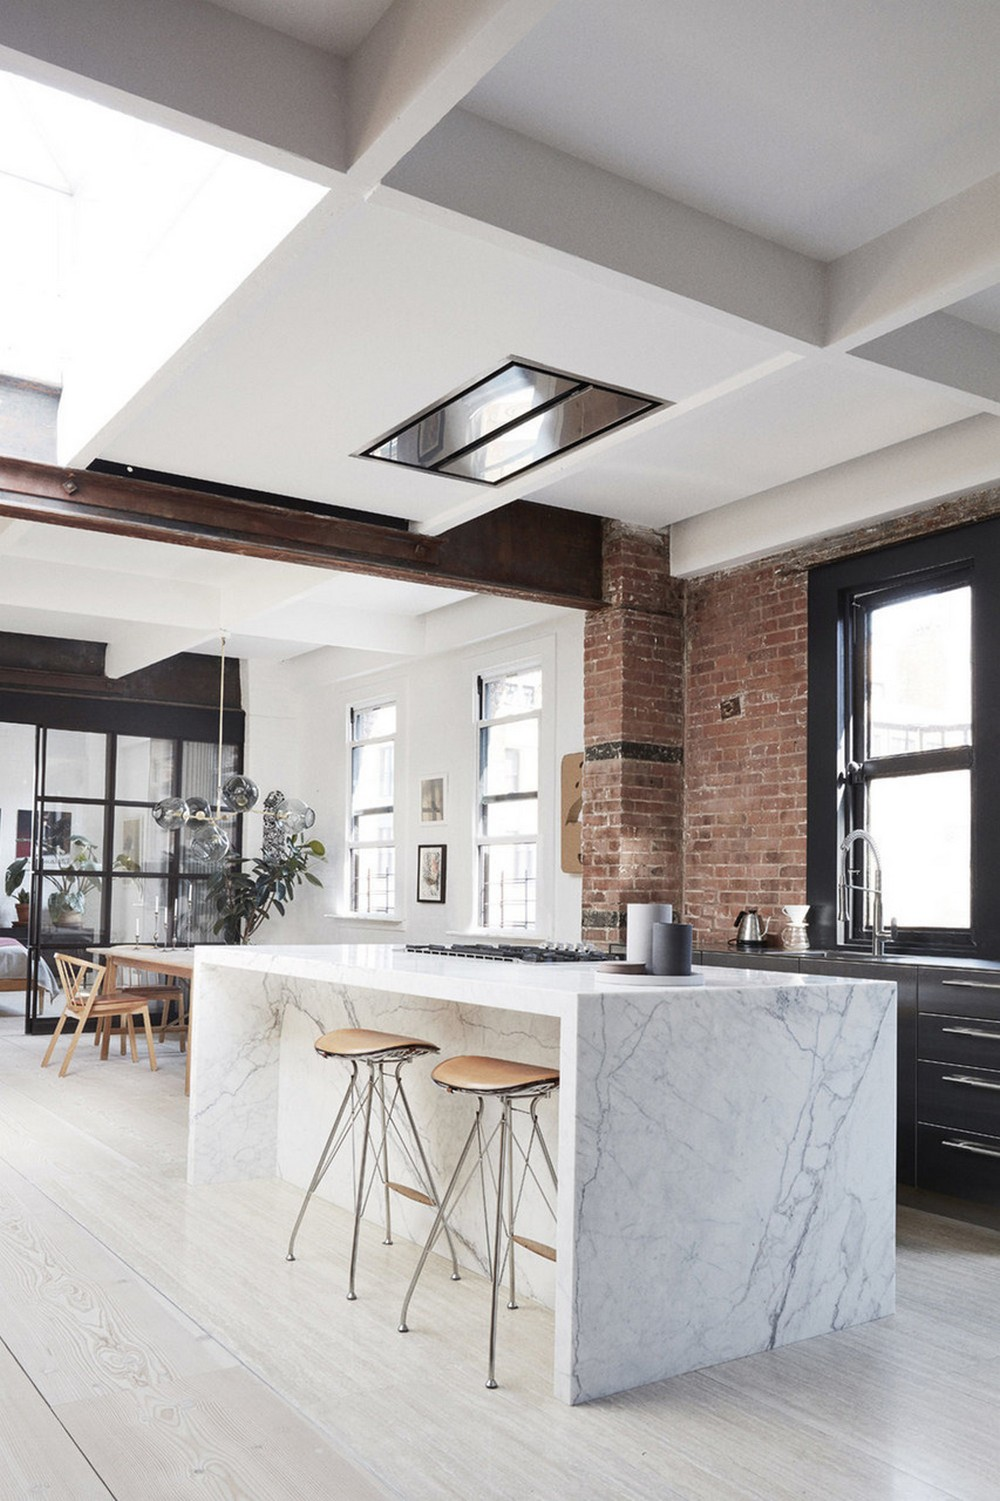 New York Industrial Lofts Be Inspired by a Series of Stunning New York Industrial Lofts Be Inspired by a Series of Stunning New York Industrial Lofts 12